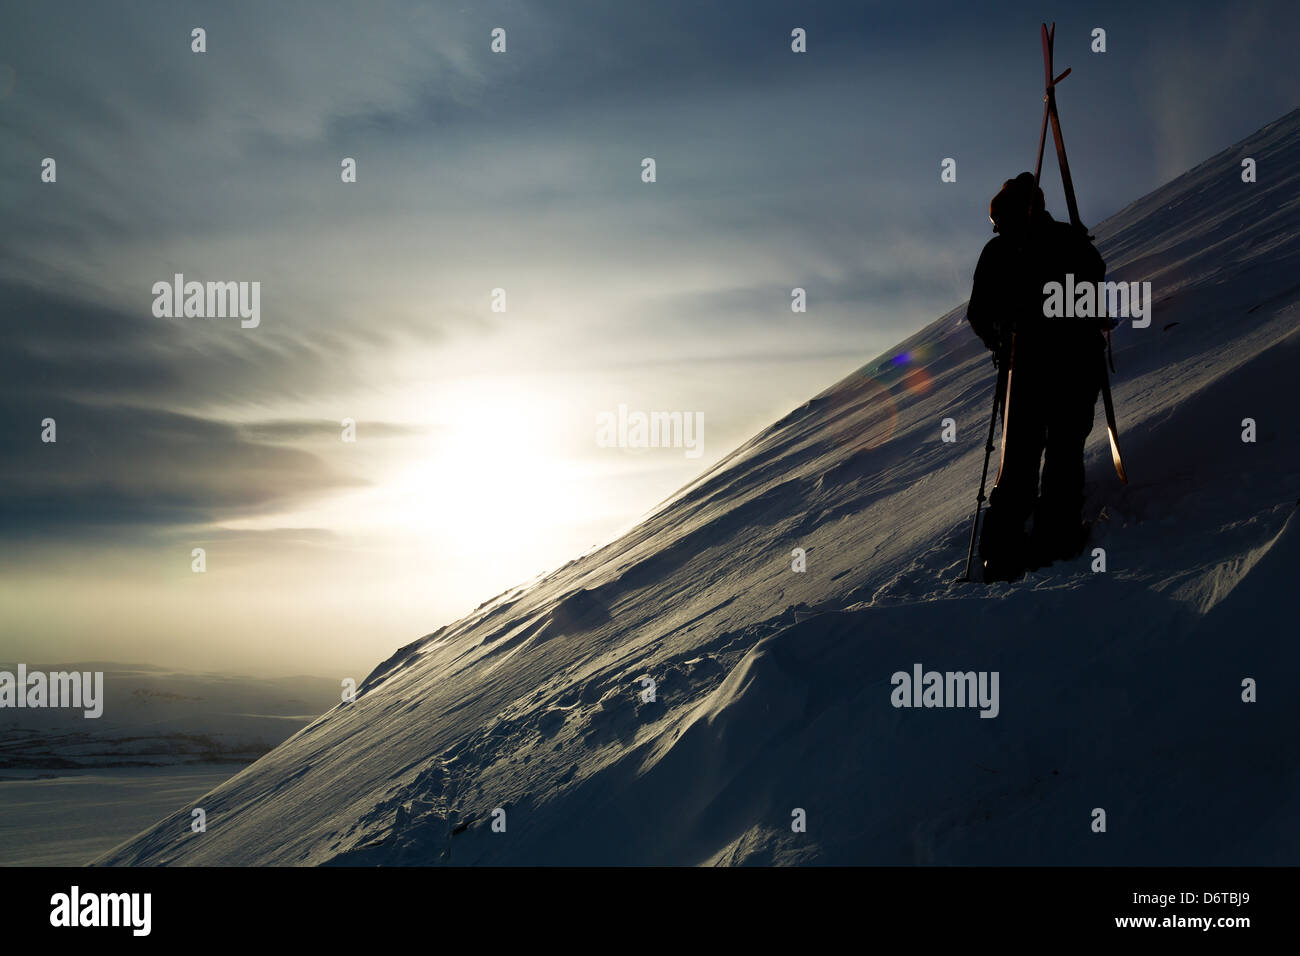 A mountain sun set image, skier or climber looking away from the camera. Dark image with strong contrast. Stock Photo